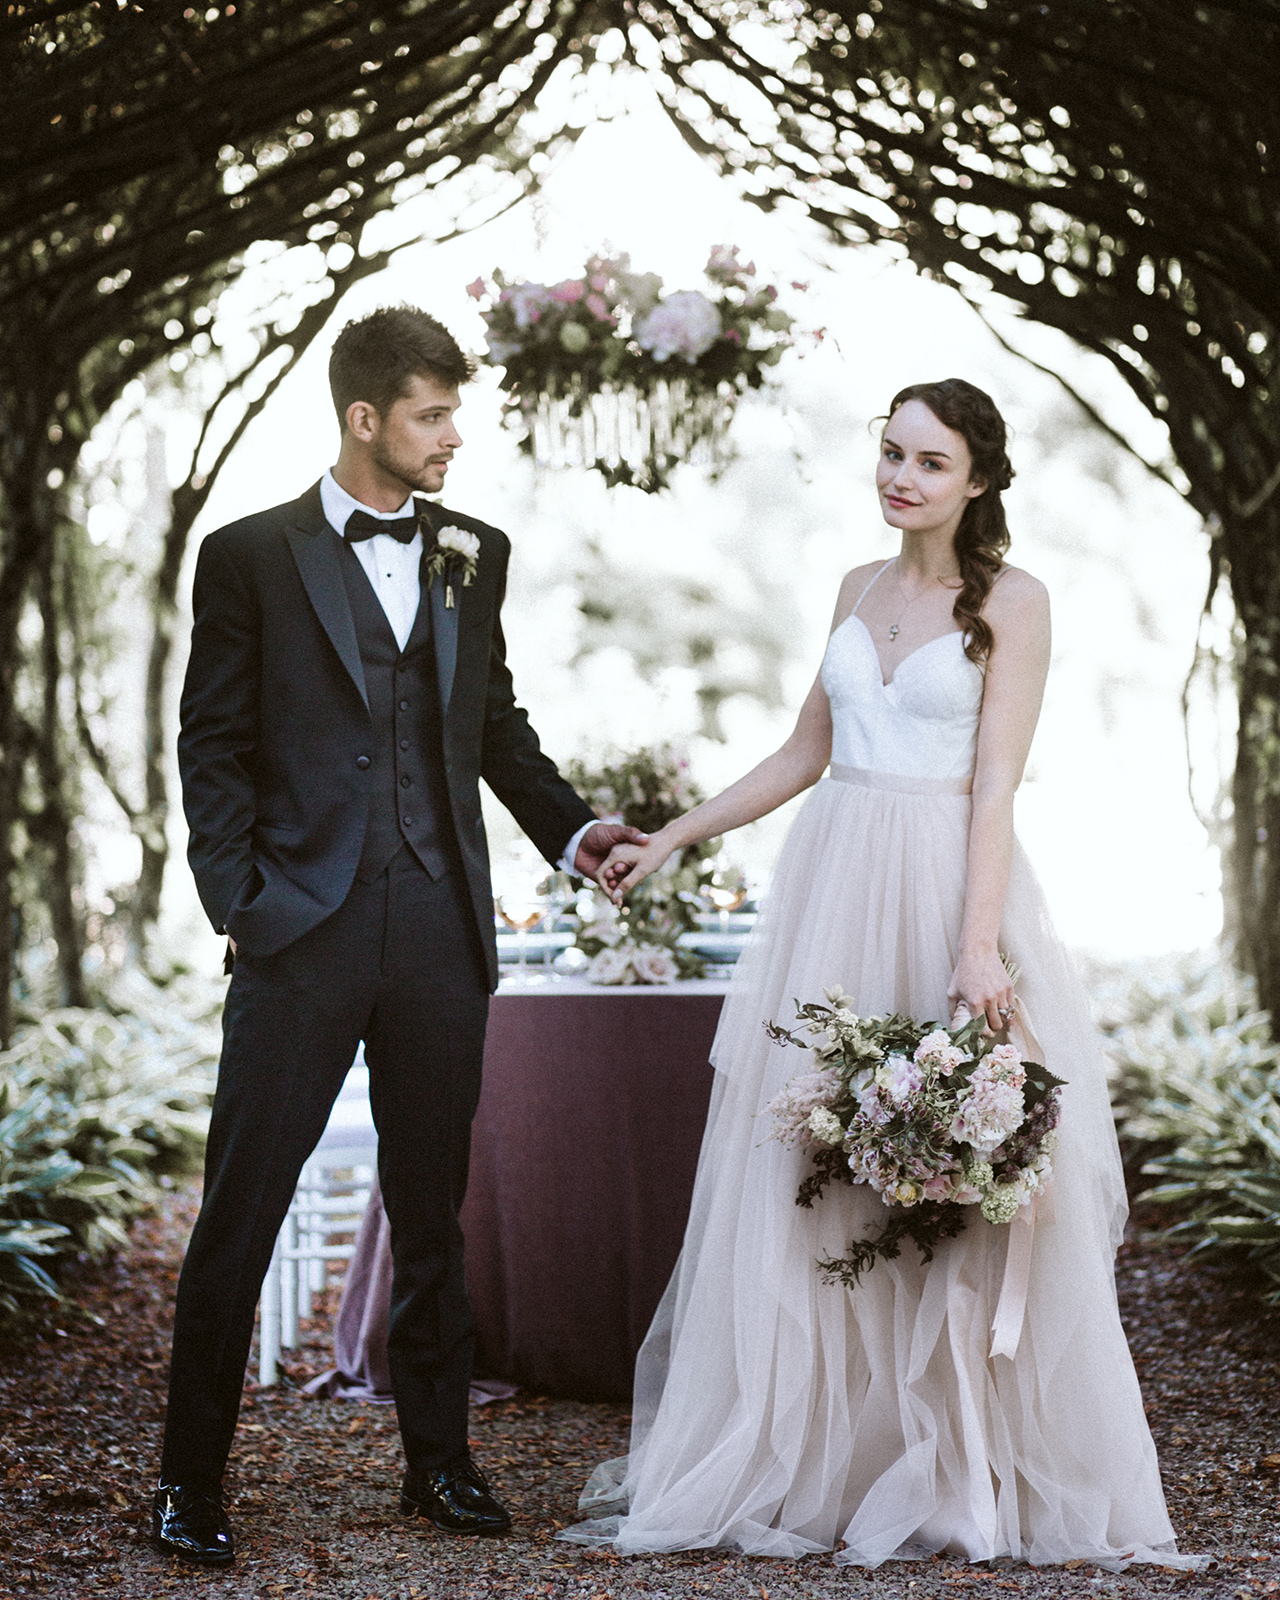 Off White Tulle Bridal Gown Chicago Wedding lisa kathan photography